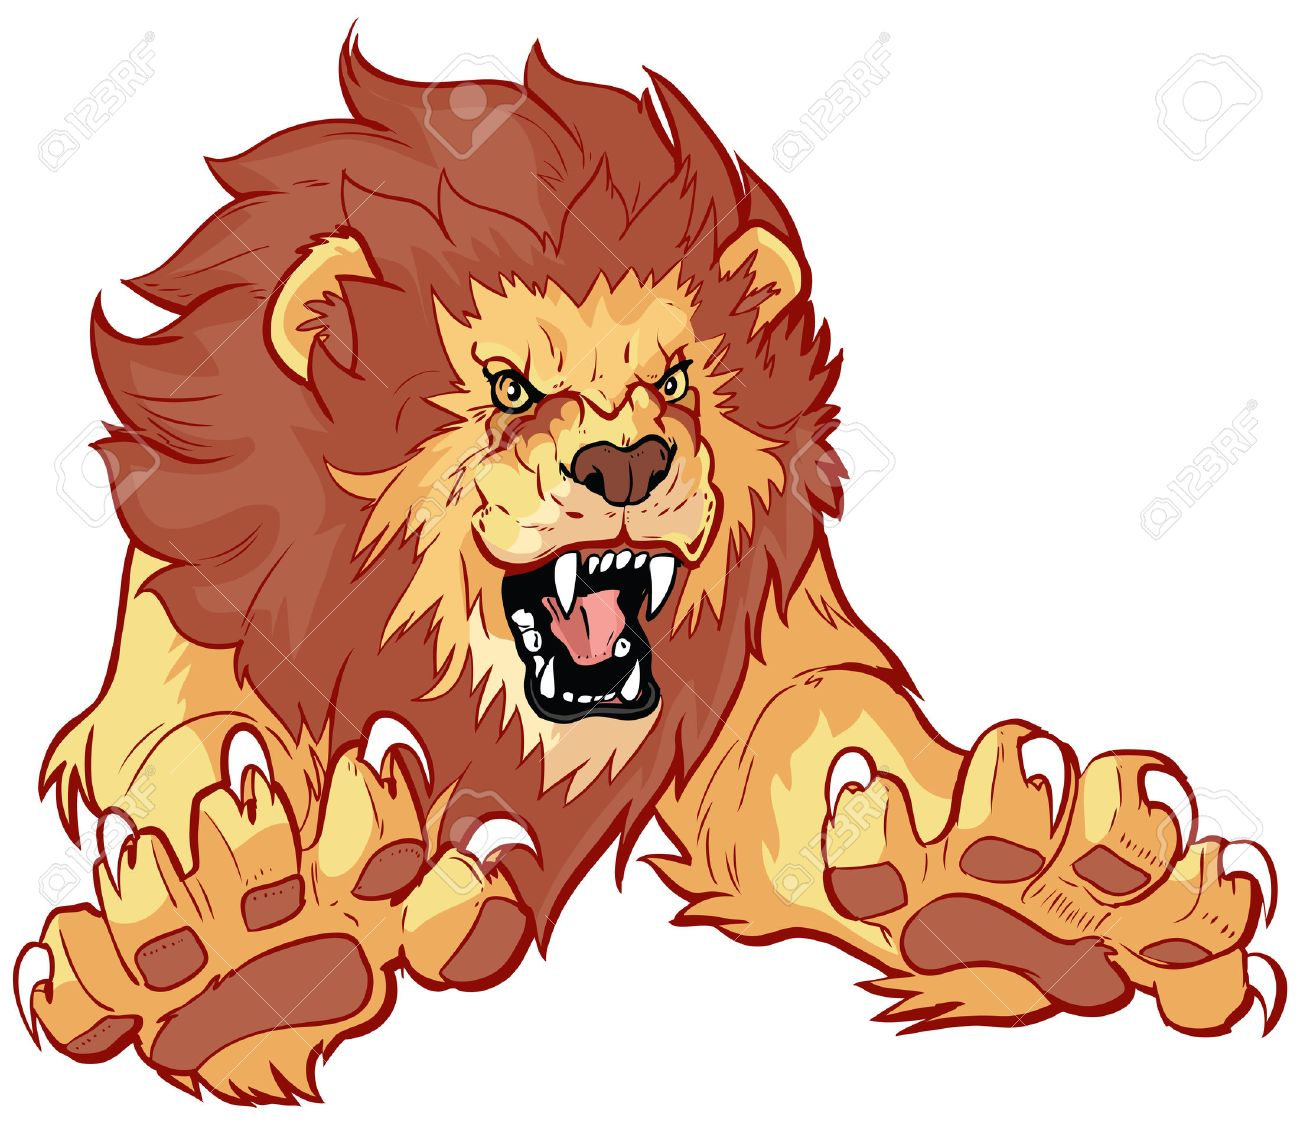 hight resolution of vector vector cartoon clip art illustration of a roaring lion leaping or jumping forward toward the viewer with its claws out